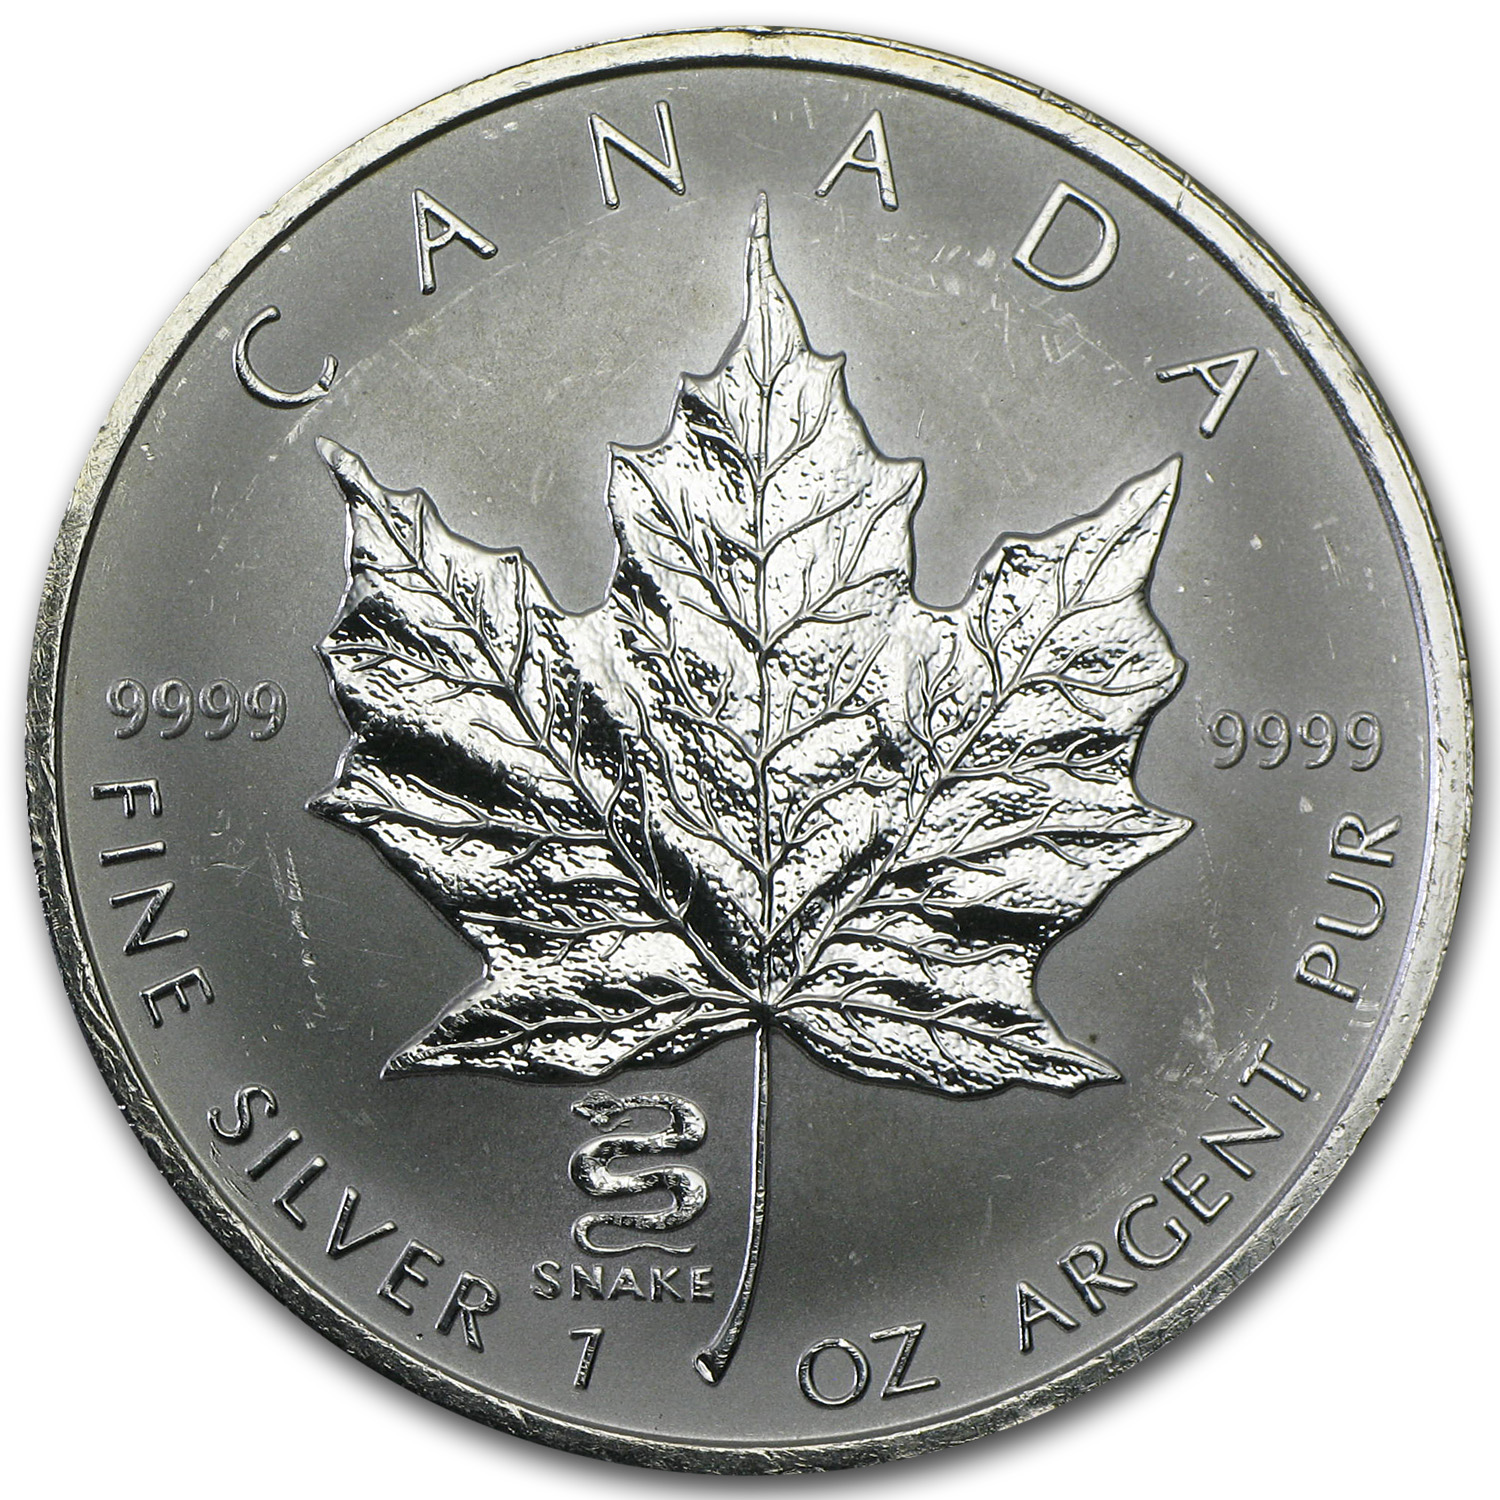 2001 1 oz Silver Maple Leaf Lunar Snake Privy (Abrasions, Spots)